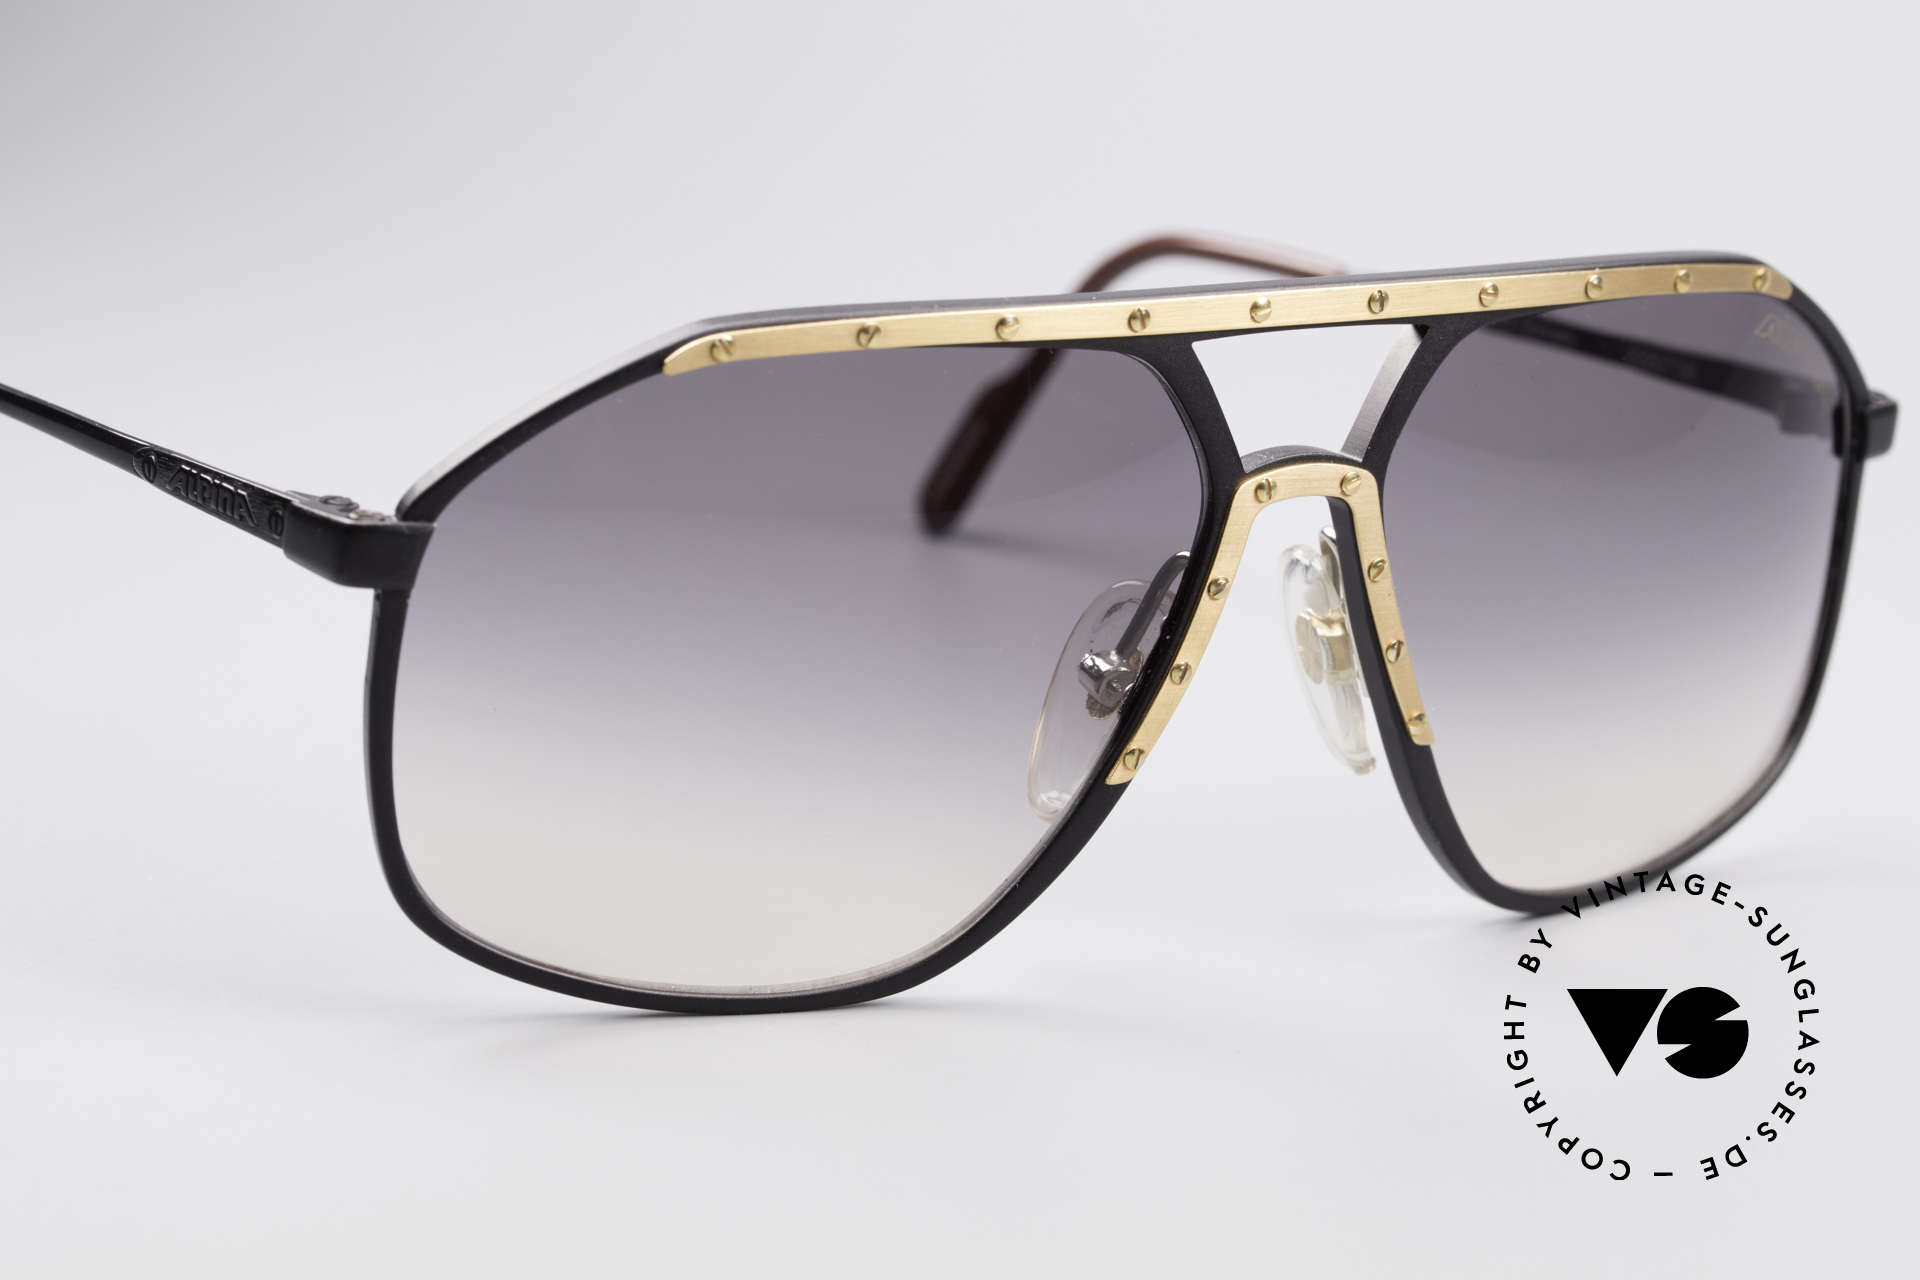 Alpina M1/7 Iconic Vintage Sunglasses, one of the most wanted vintage models, WORLDWIDE, Made for Men